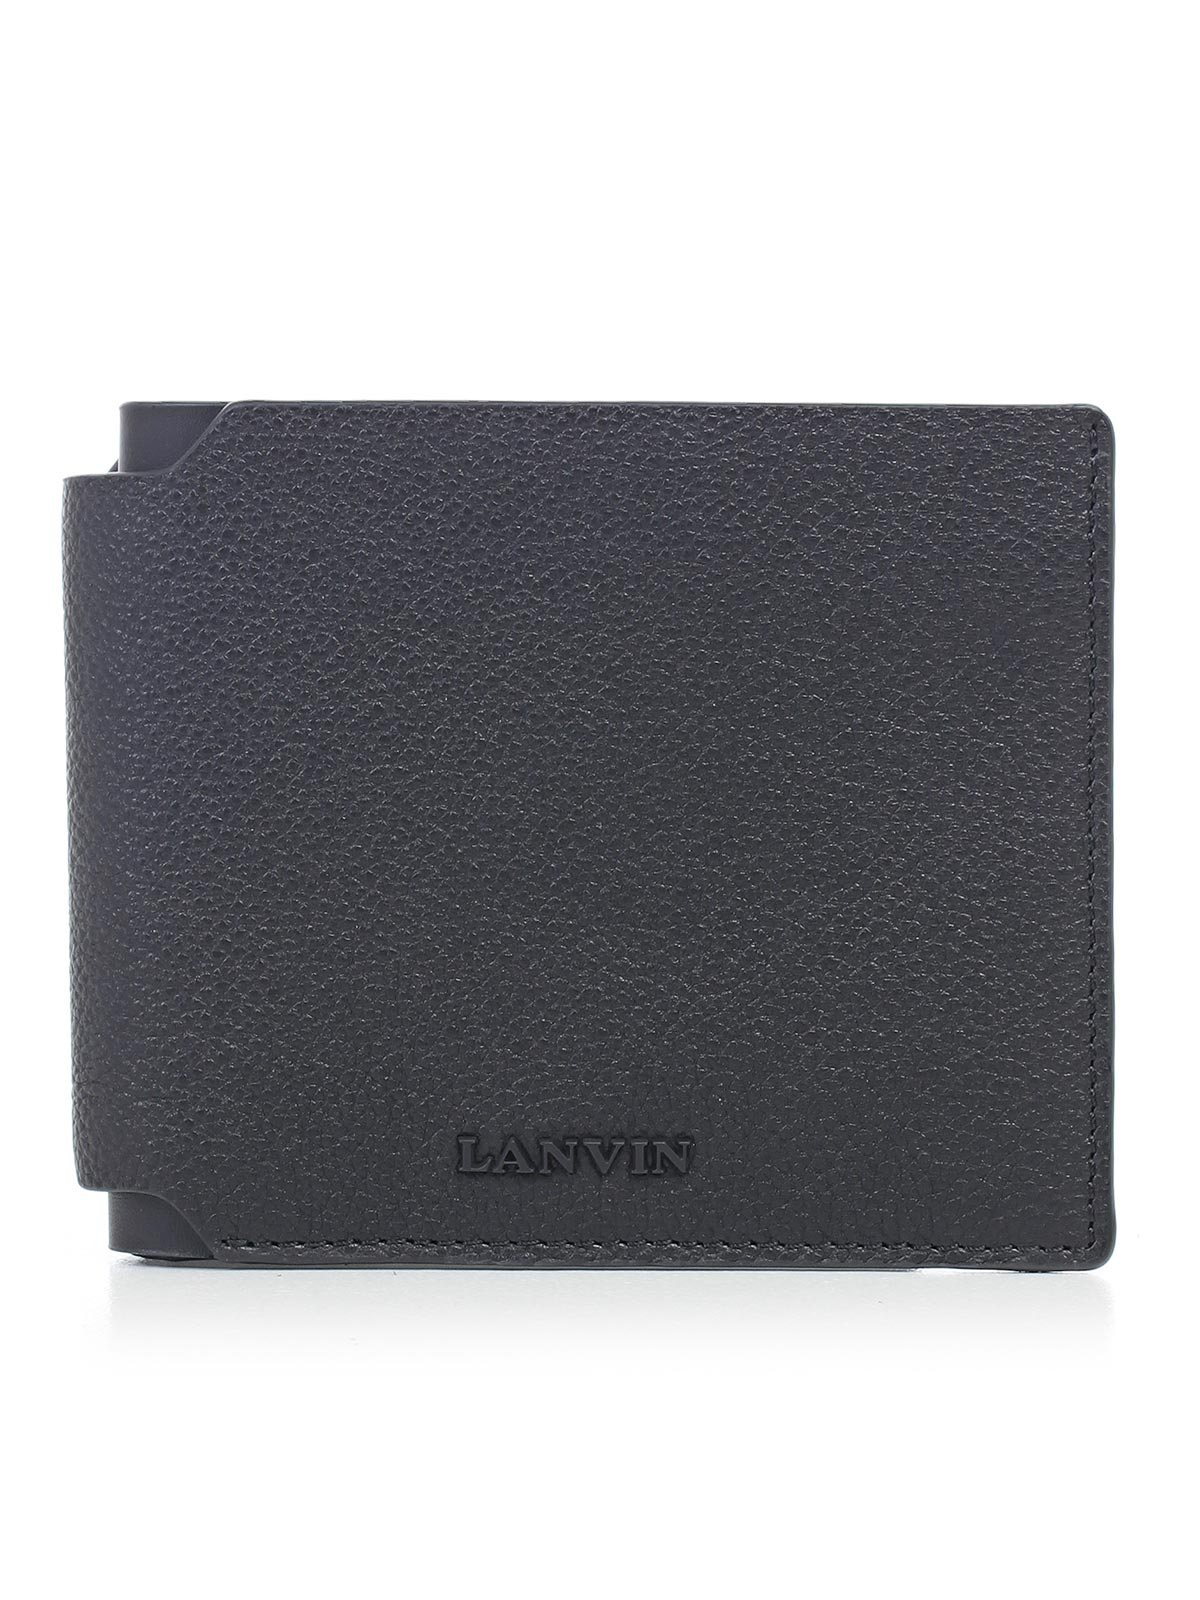 Picture of Lanvin Wallet